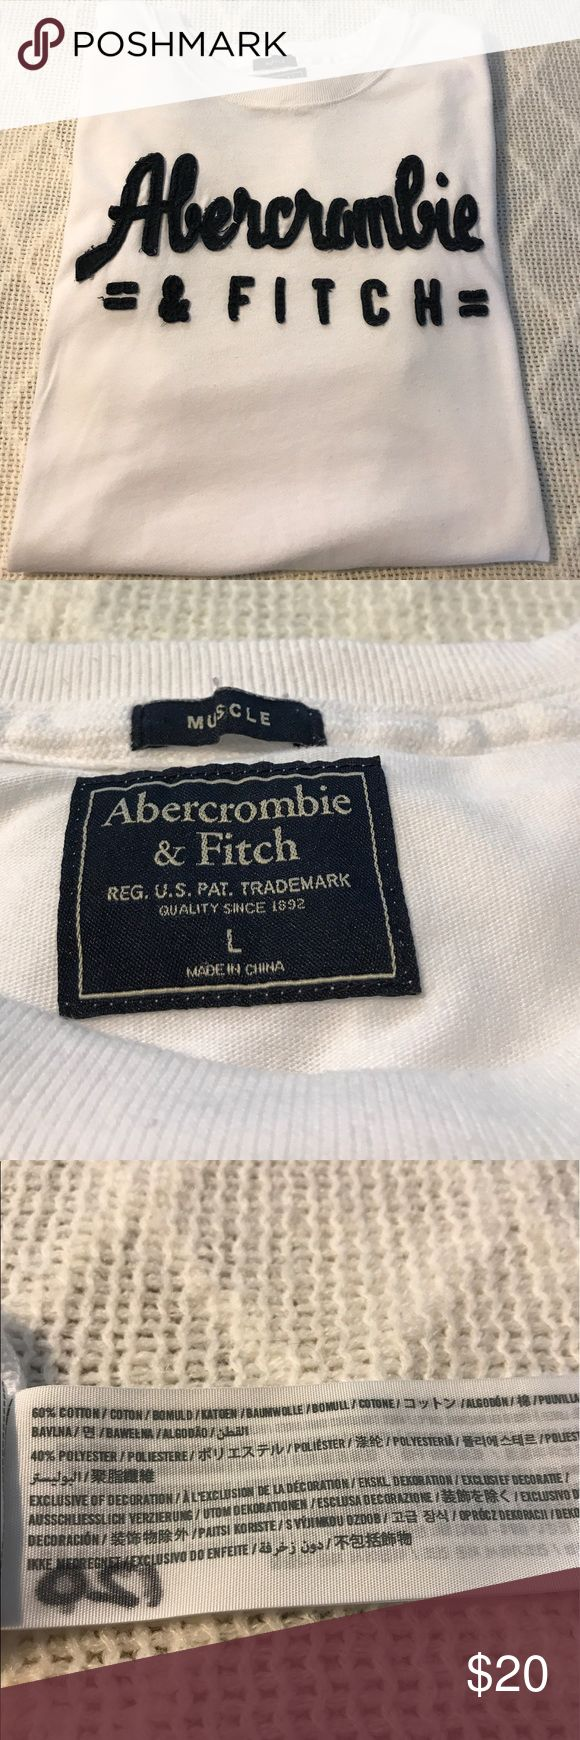 """Men's Abercrombie & Fitch White Blue Muscle Shirt Abercrombie & Fitch White & Blue Muscle T-shirt. Gently-used. Piling throughout but so minimal camera cannot pick up. Great quality! Stretchy material. Measurements all approximate: 19"""" armpit to armpit; 30"""" top of shoulder to Bottom Abercrombie & Fitch Shirts"""